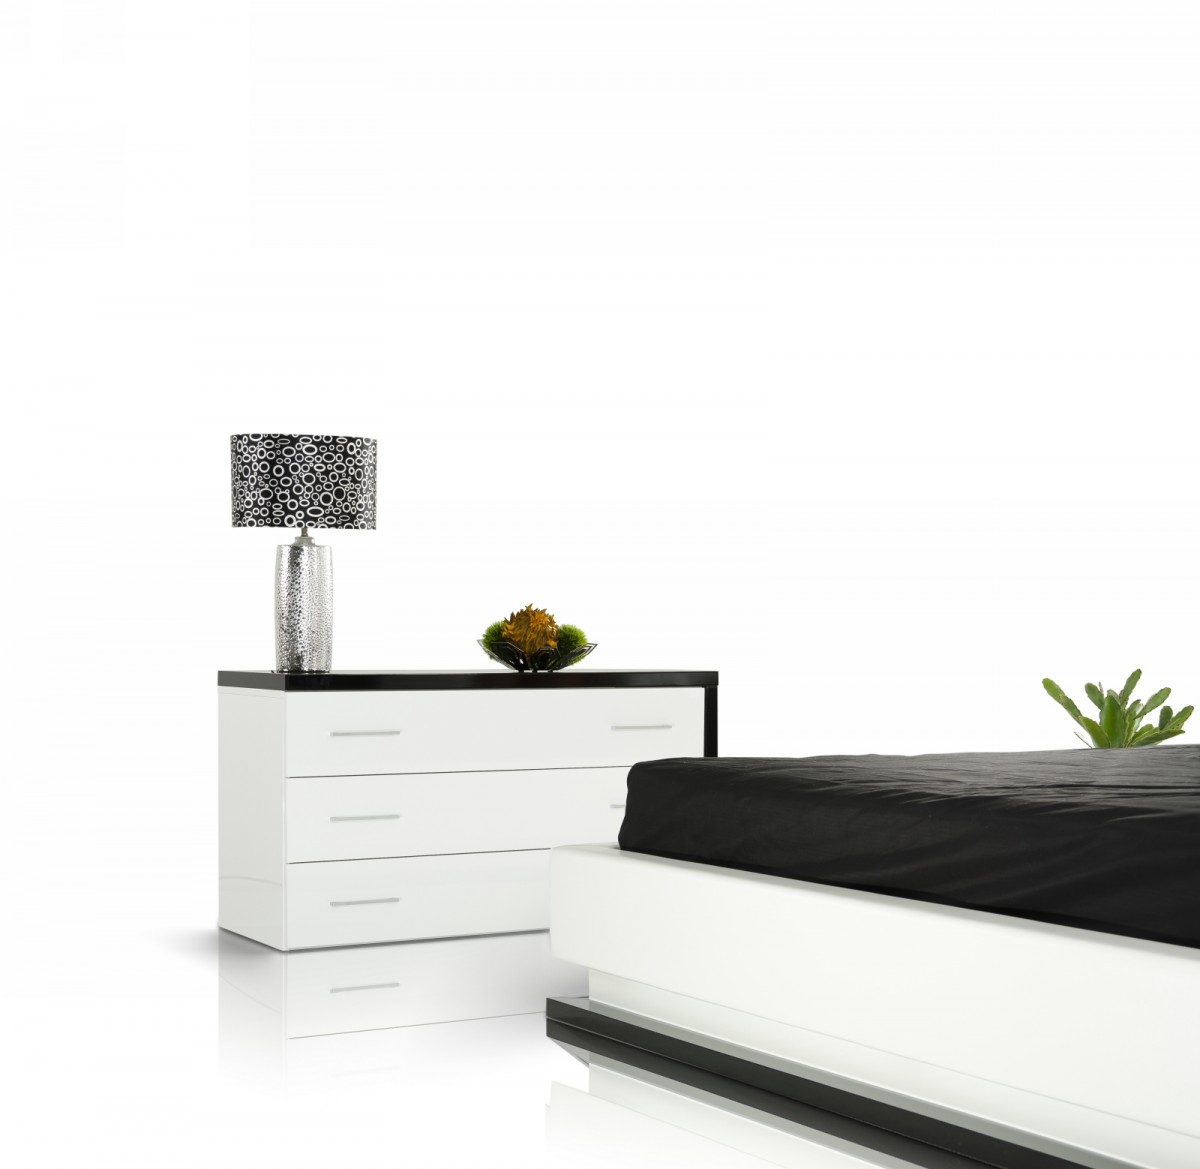 Modrest infinity contemporary white black bedroom set modern bedroom bedroom - Why white contemporary bedroom furniture ...